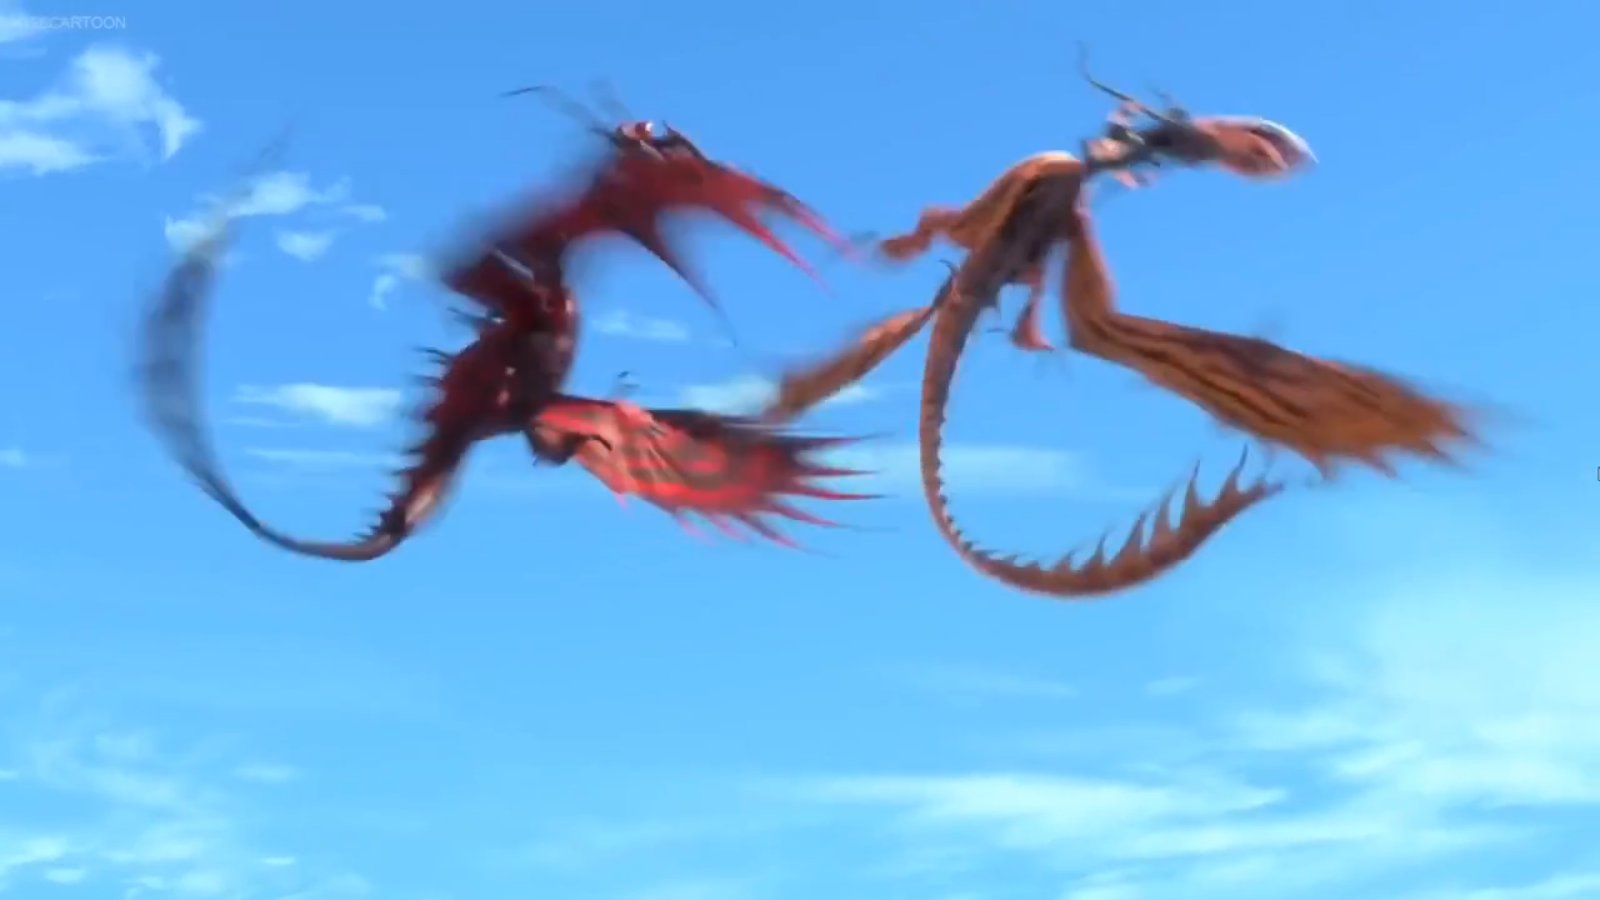 Image hookfangs nemesis 48g how to train your dragon wiki hookfangs nemesis 48g ccuart Images